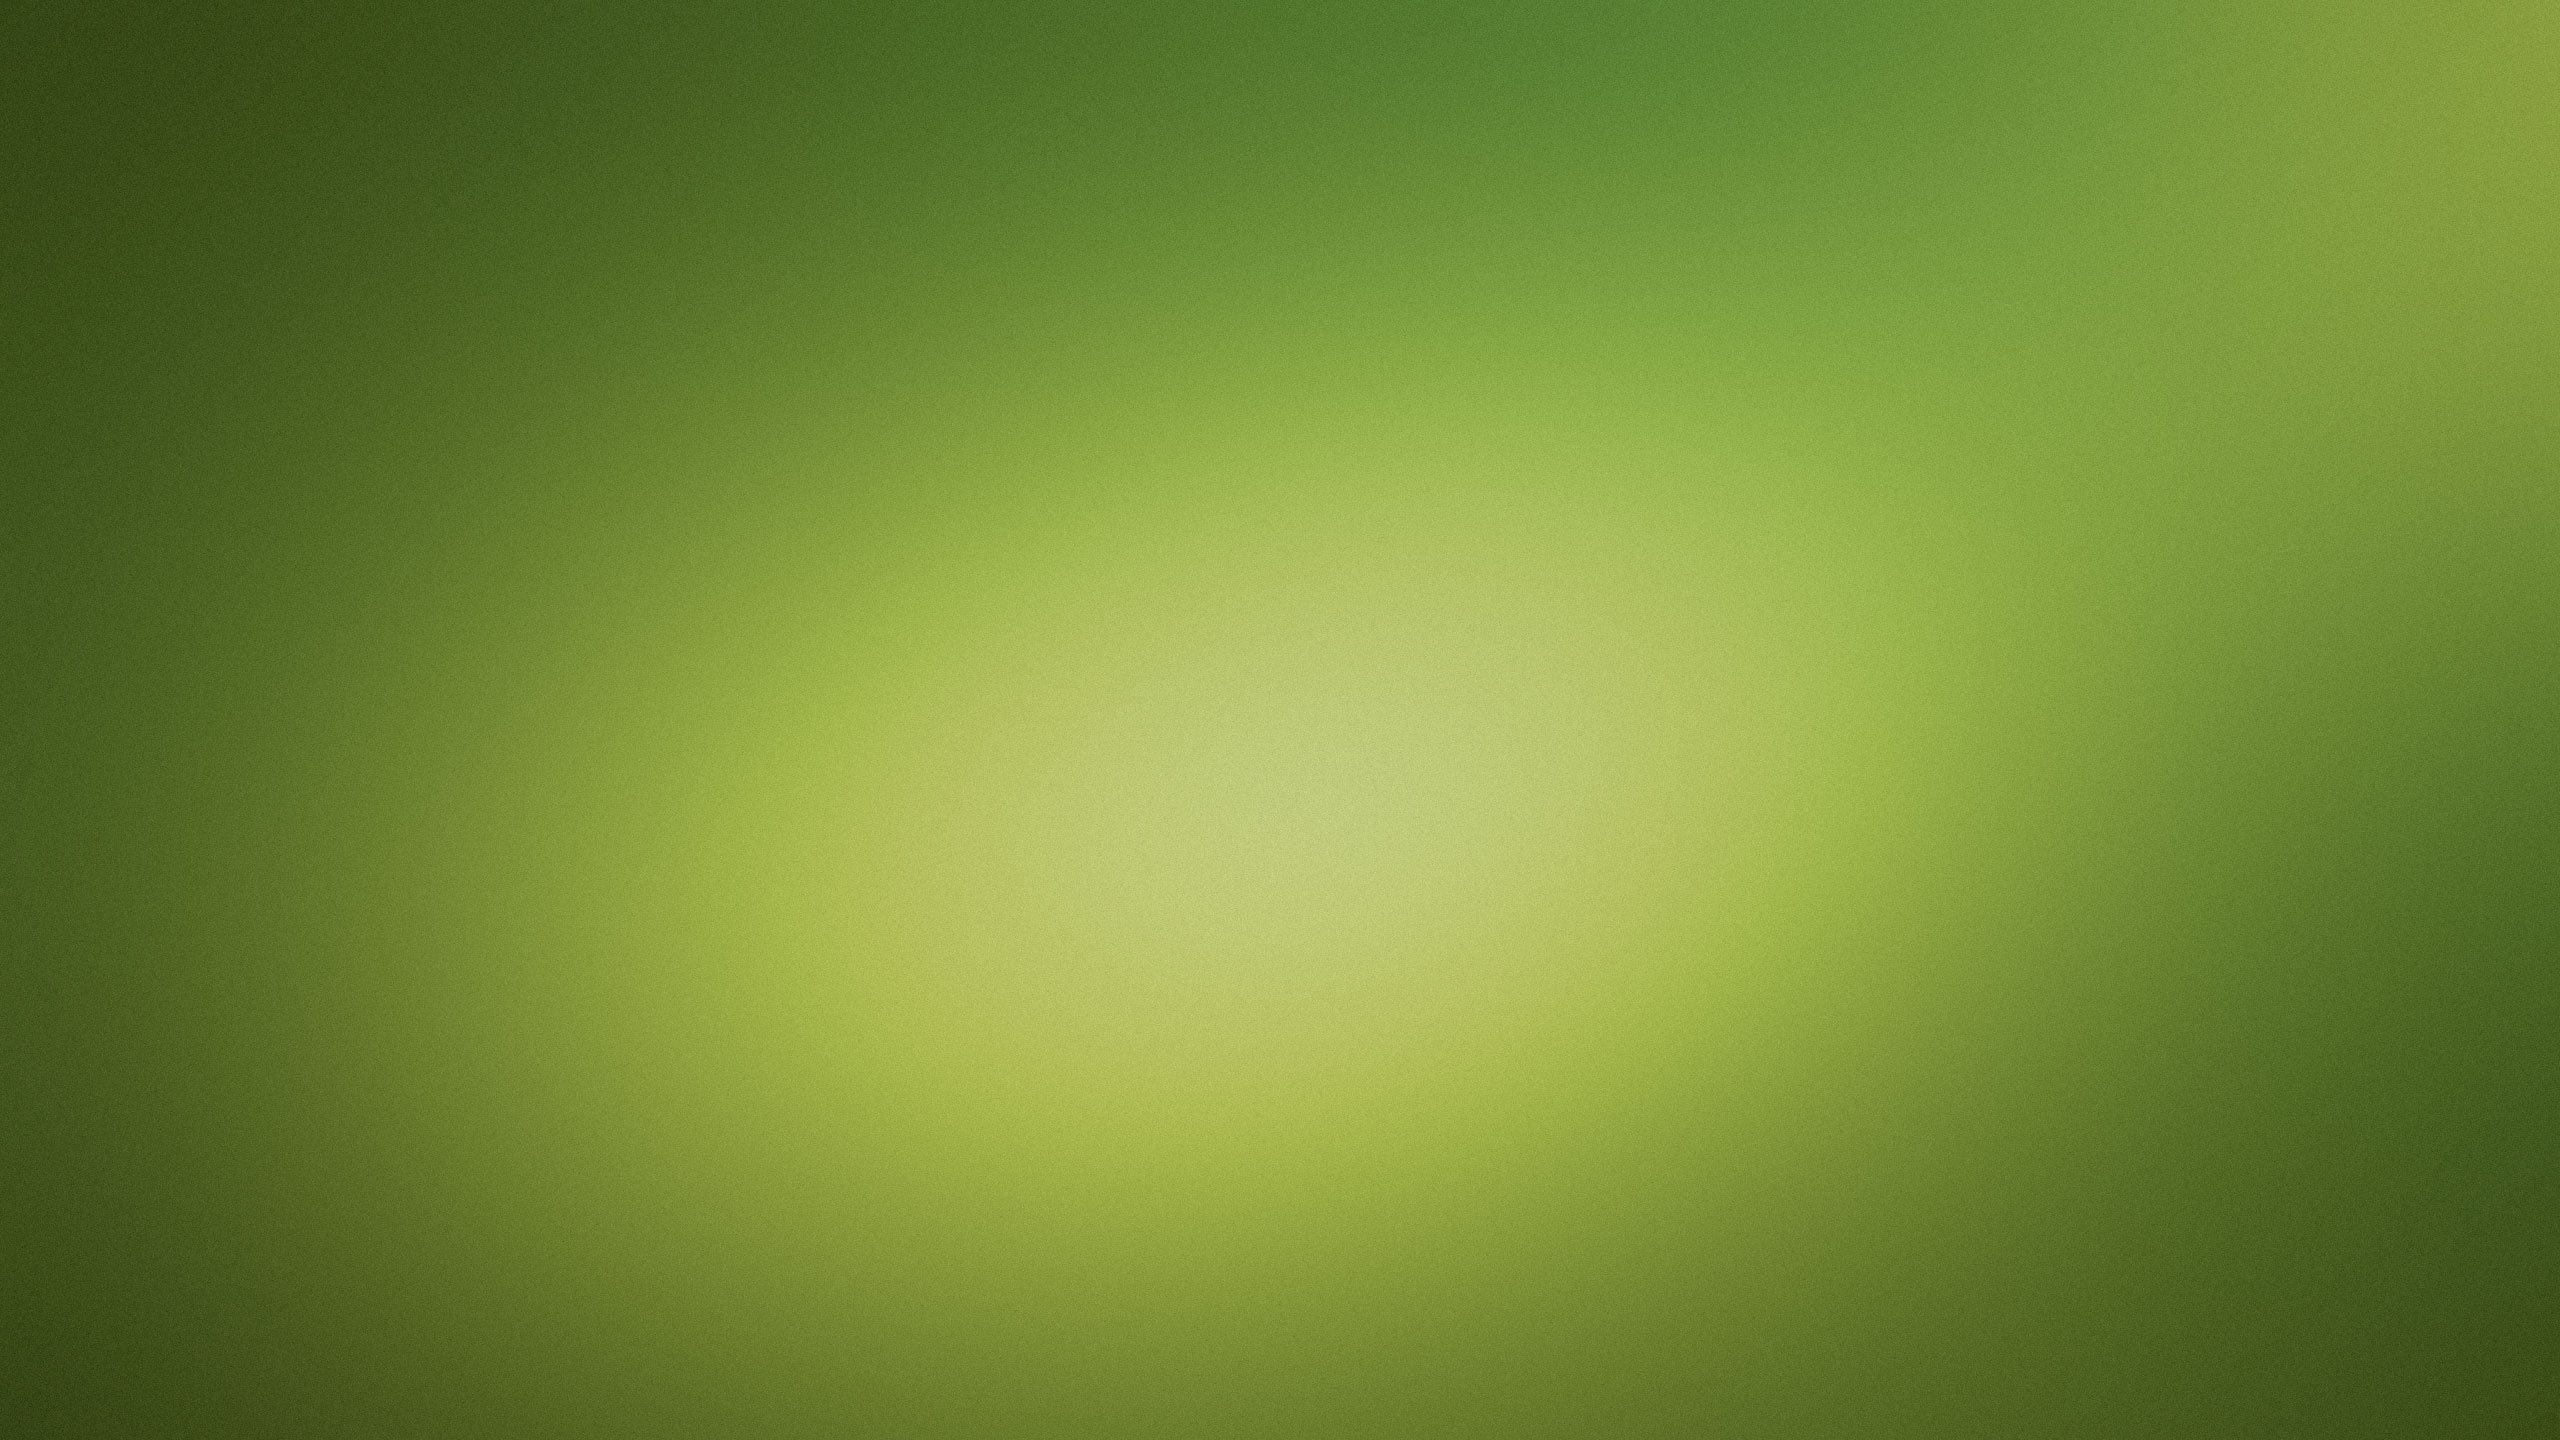 Light Green Background Desktop Wallpaper 2560x1440